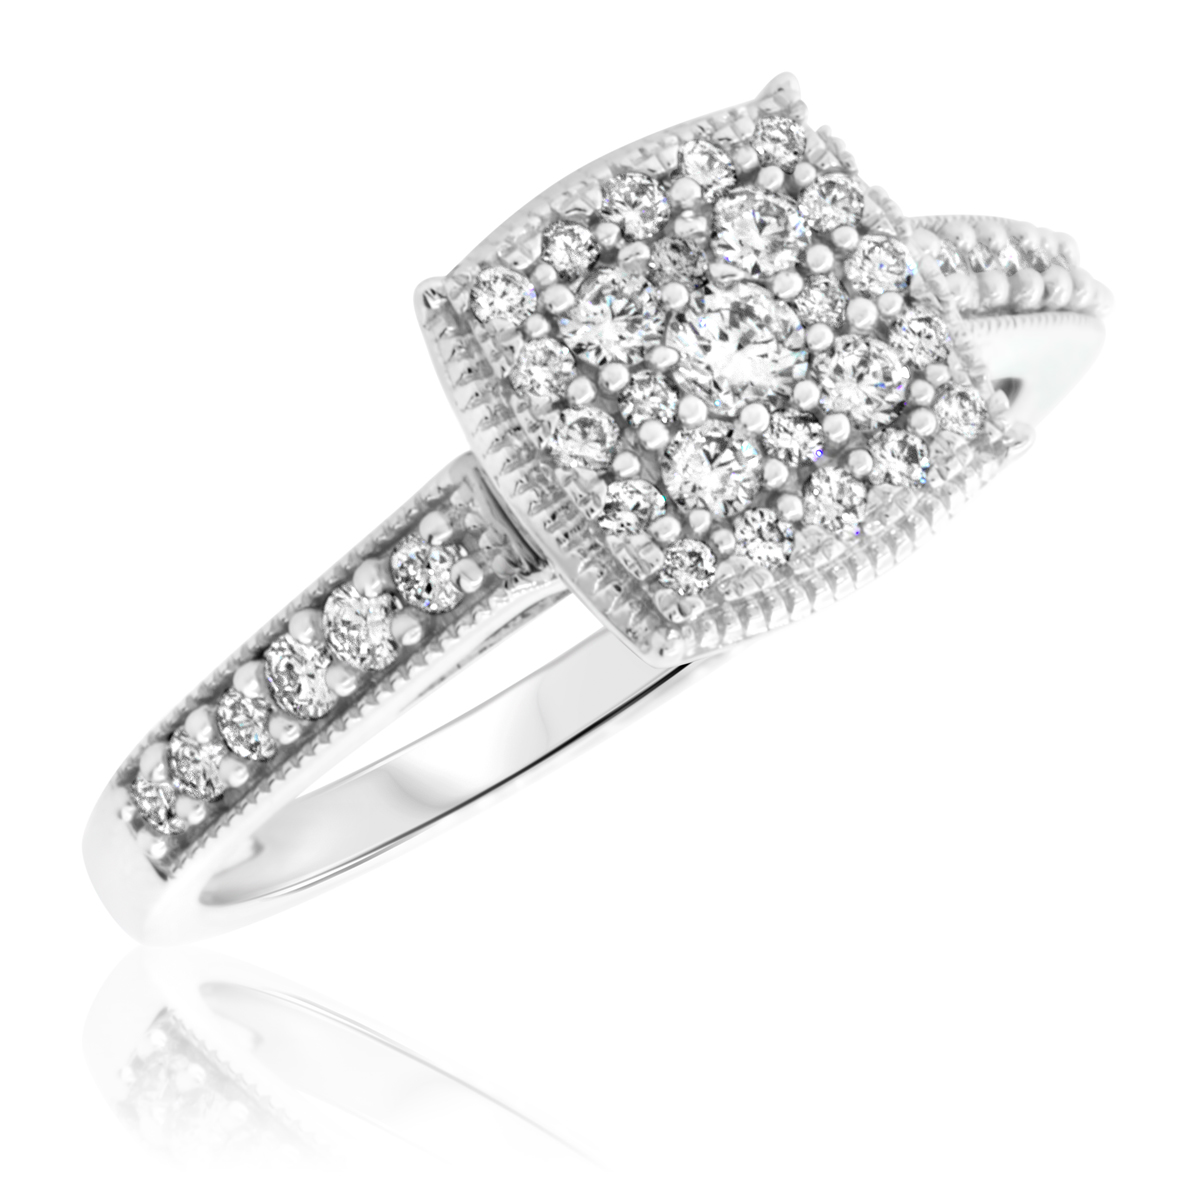 1/2 Carat T.W. Round Cut Diamond Ladies Engagement Ring 14K White Gold